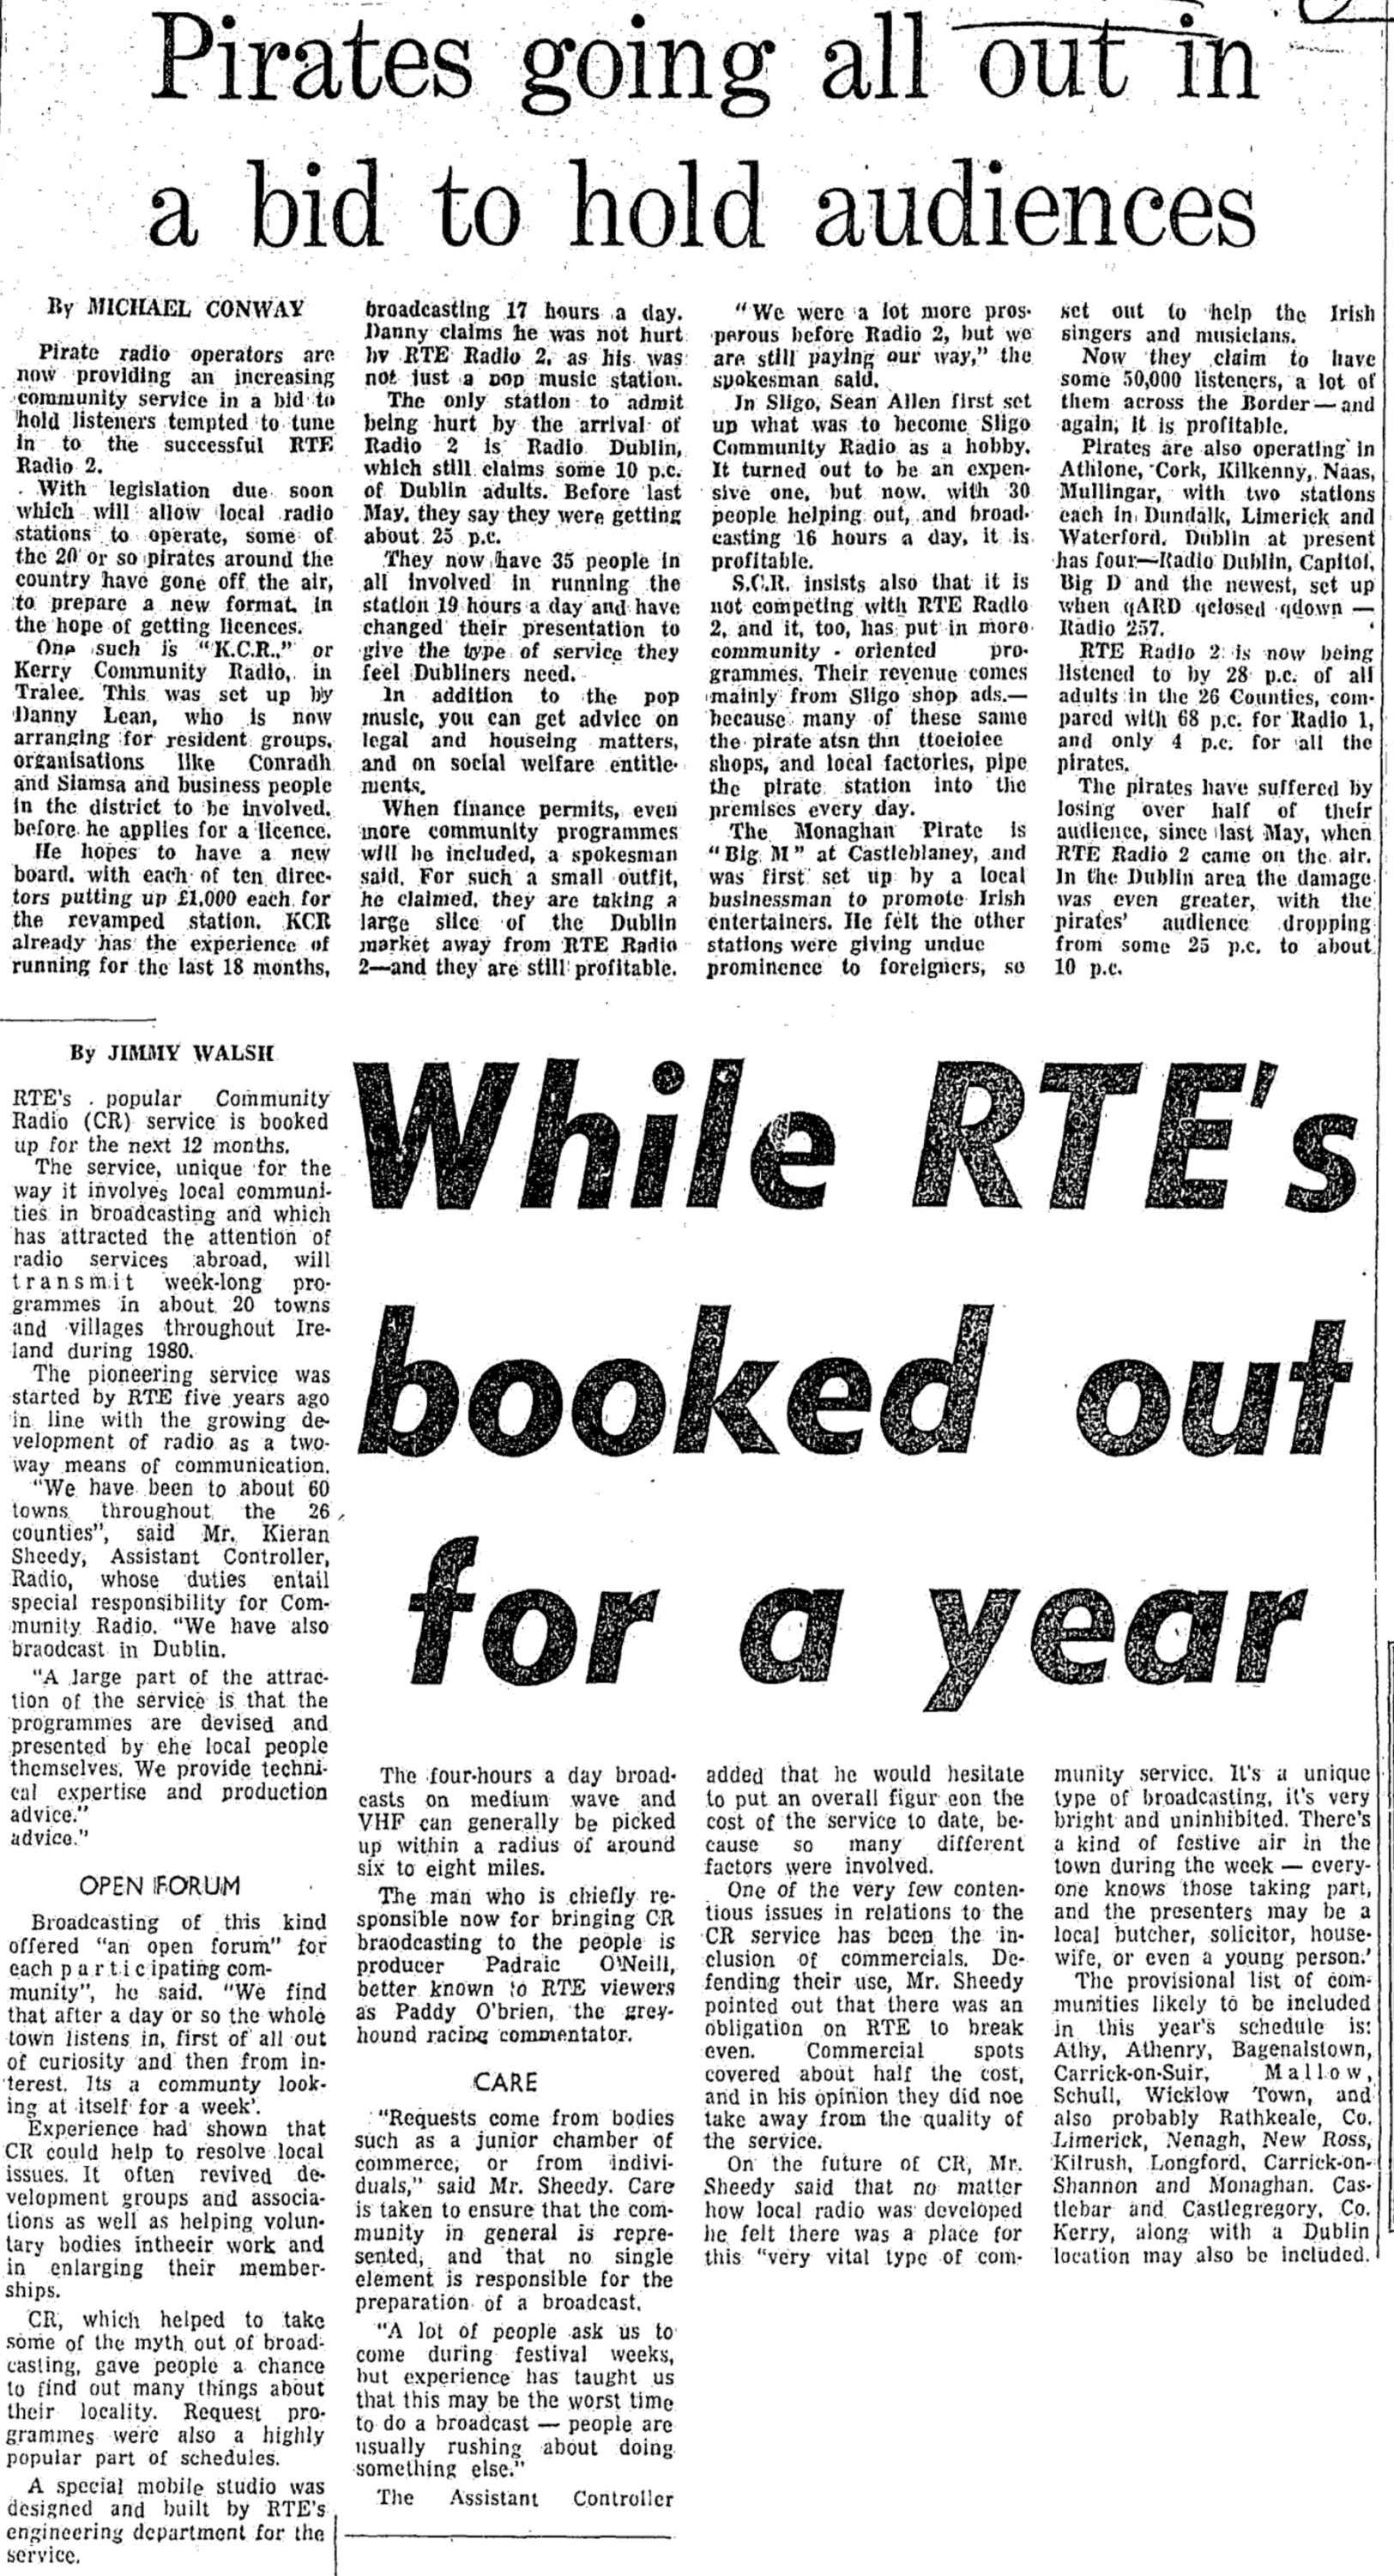 Pirates going all out in a bid to hold audiences was a newspaper headline from The Evening Press dated January 31st 1980